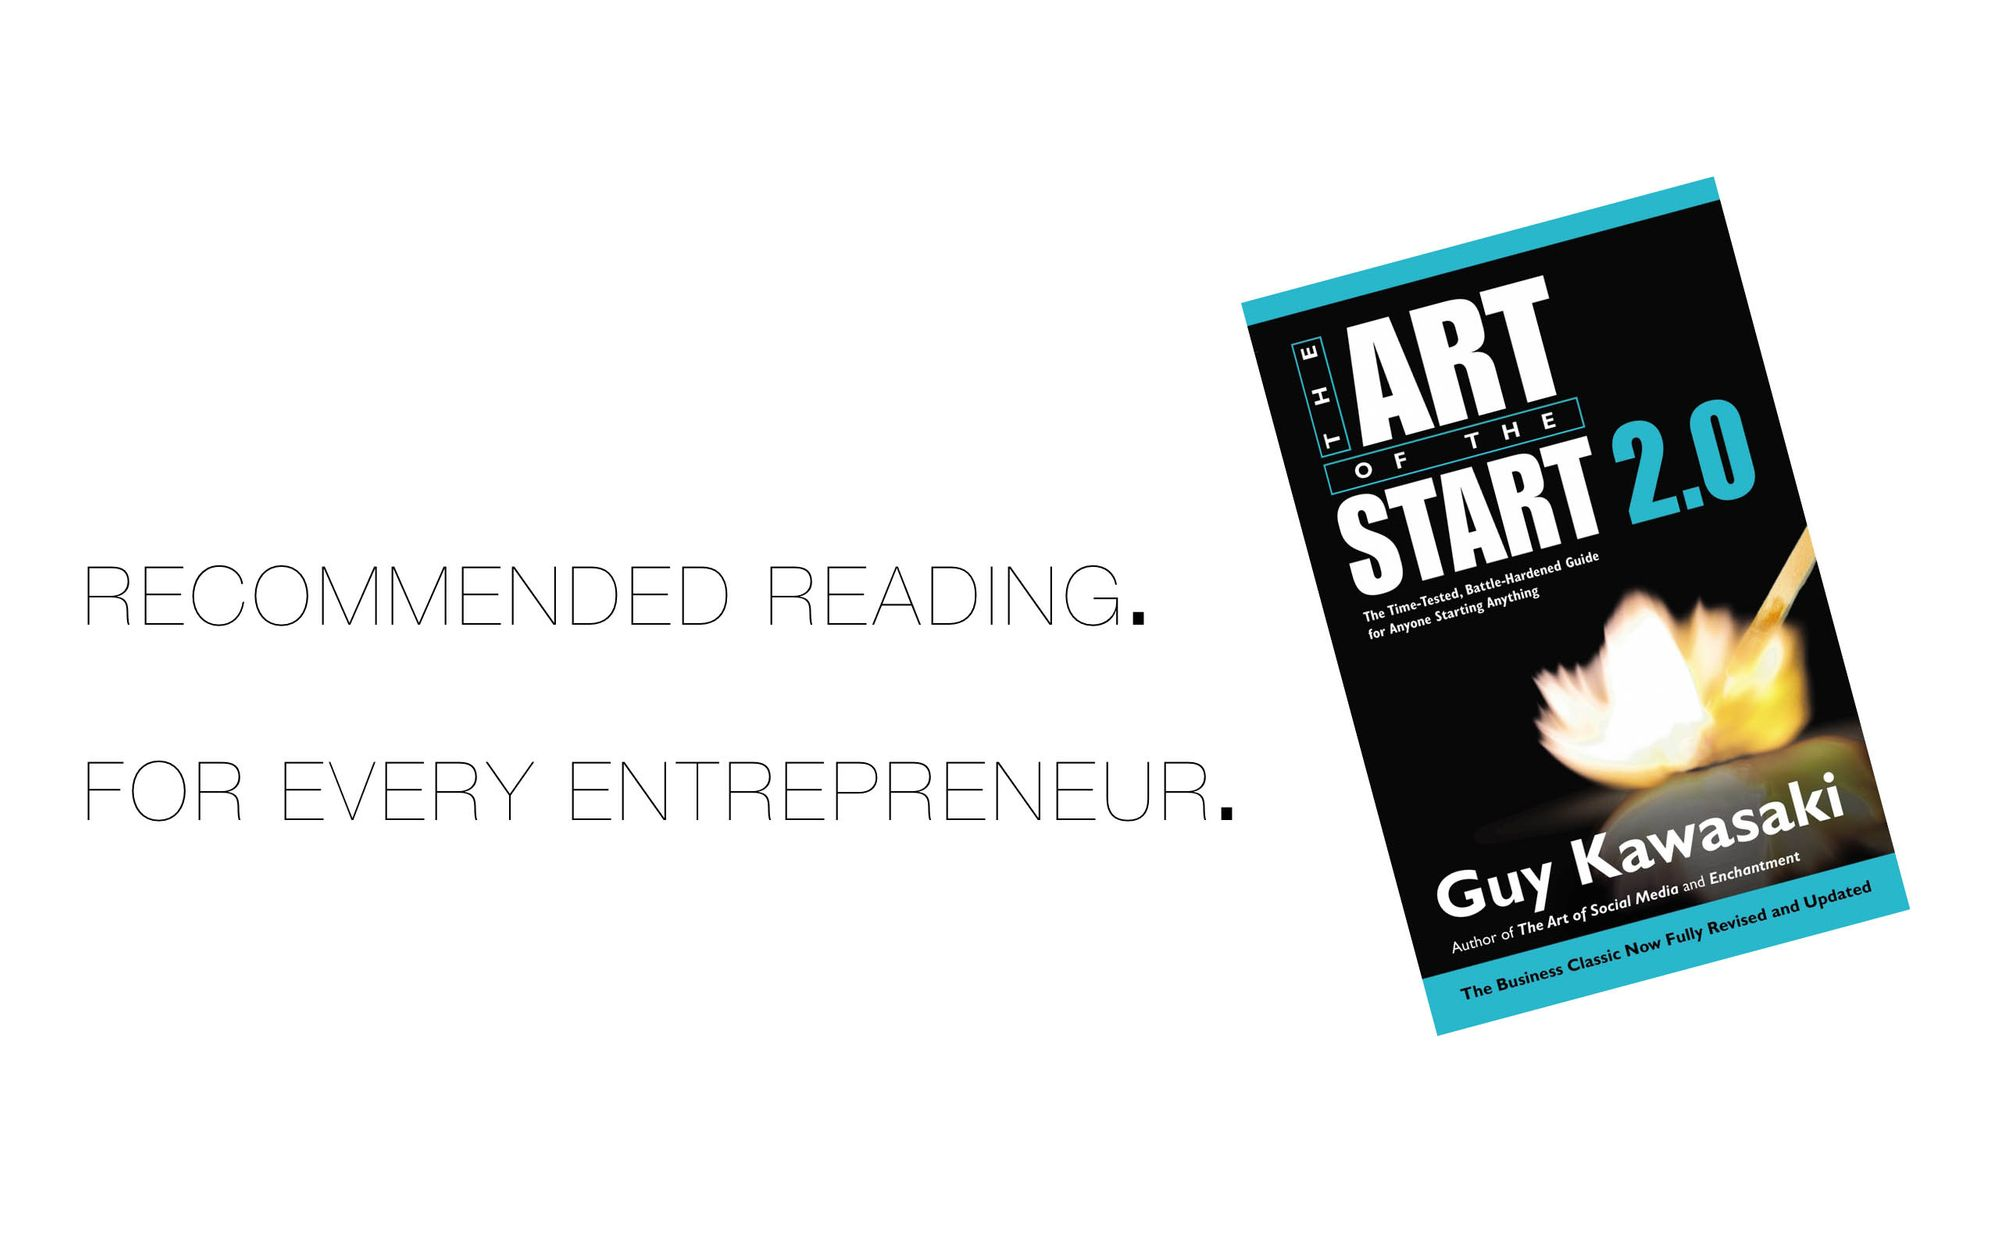 Book Review: Guy Kawasaki, The Art of the Start 2.0